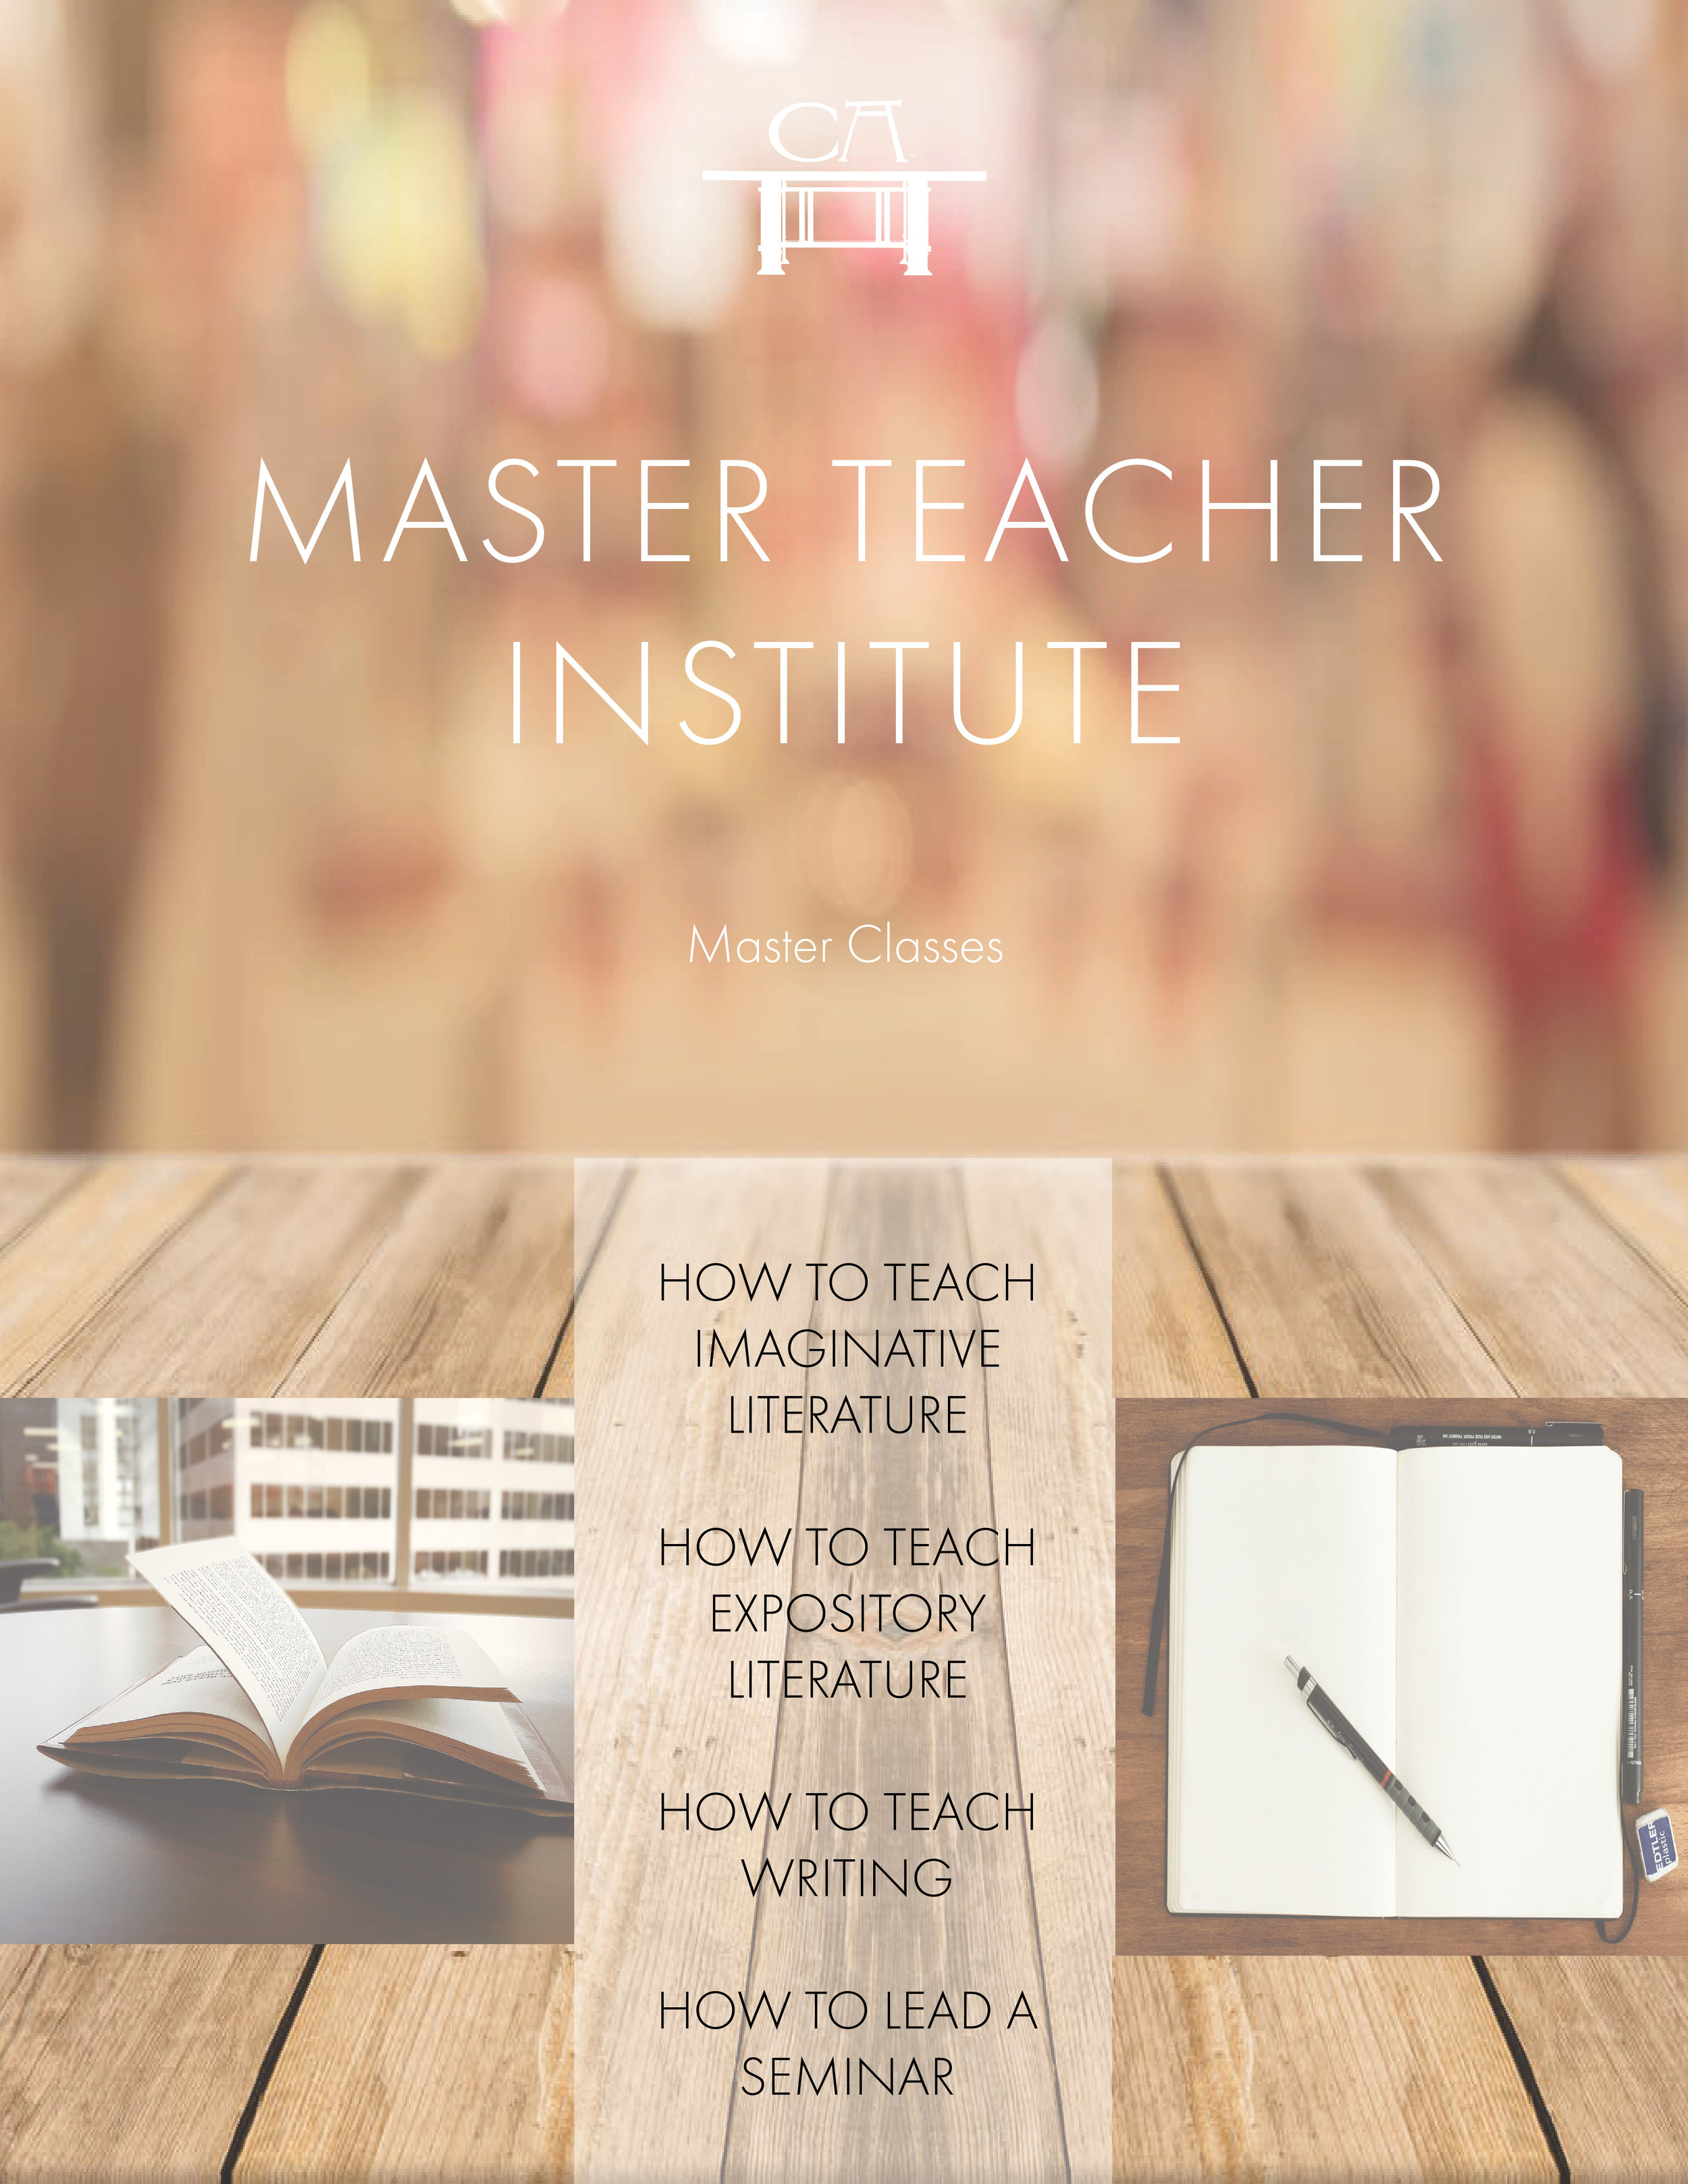 Master Teacher Institute Courses - Go for the gold at our Master Teacher Institute. Our courses on how to teach essential skills and essential works are the gold standard. Discounted for any level of membership. $400-$2000